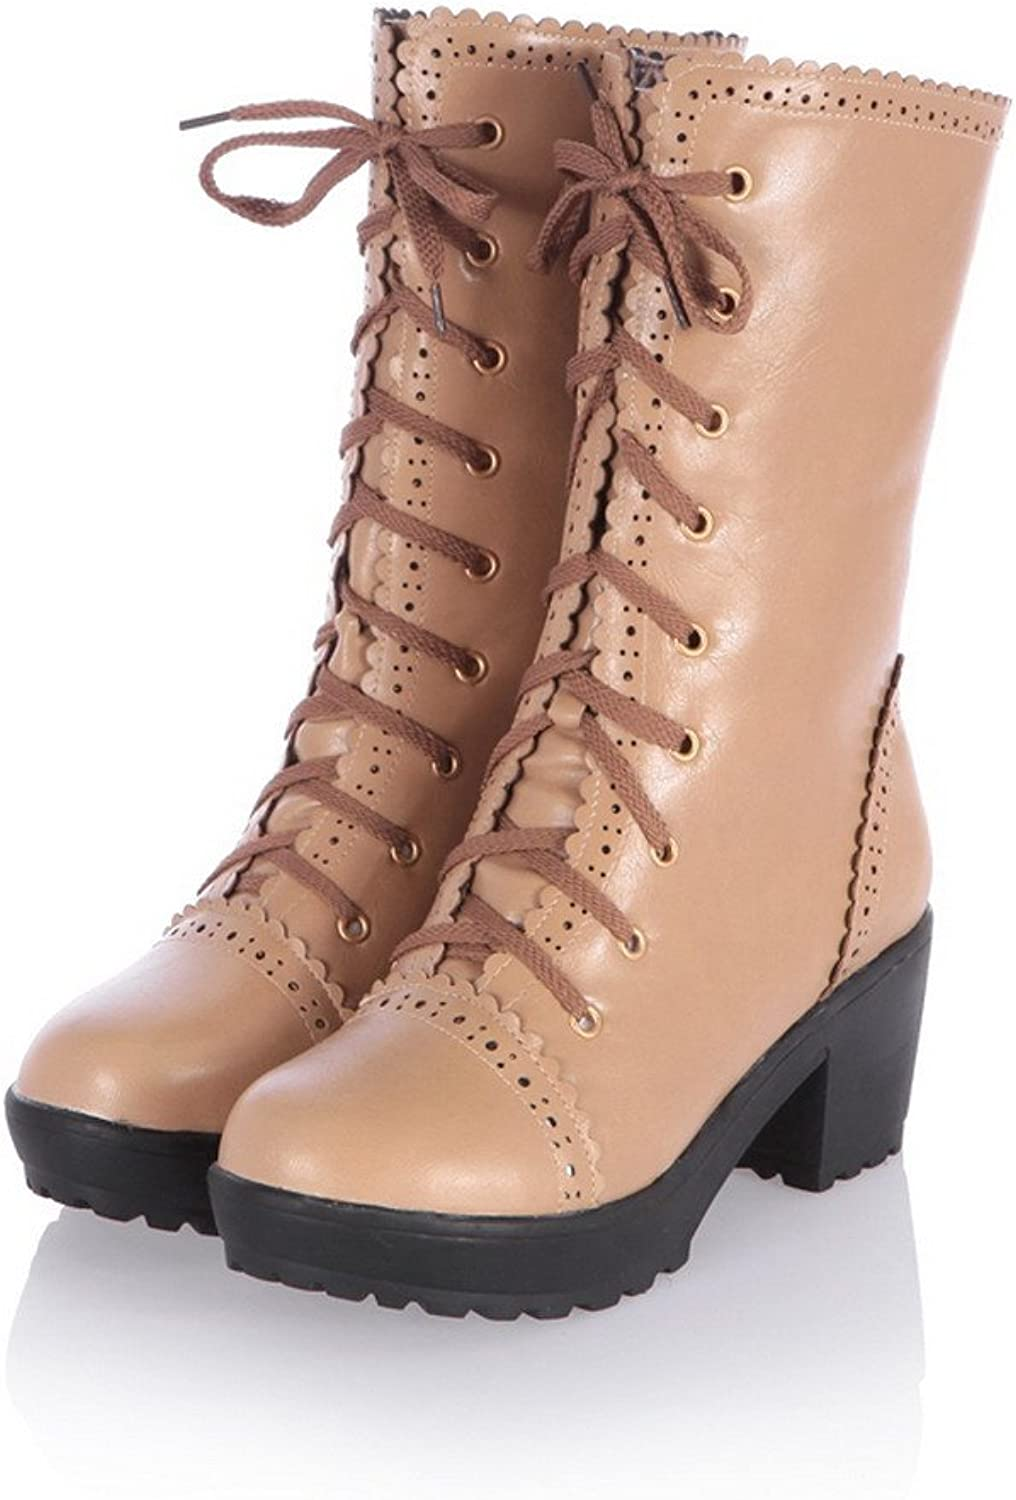 QueenFashion Women's Advanced PU Kitten Heels coloranr Match Hollow Out Combat Boots with Lace-up